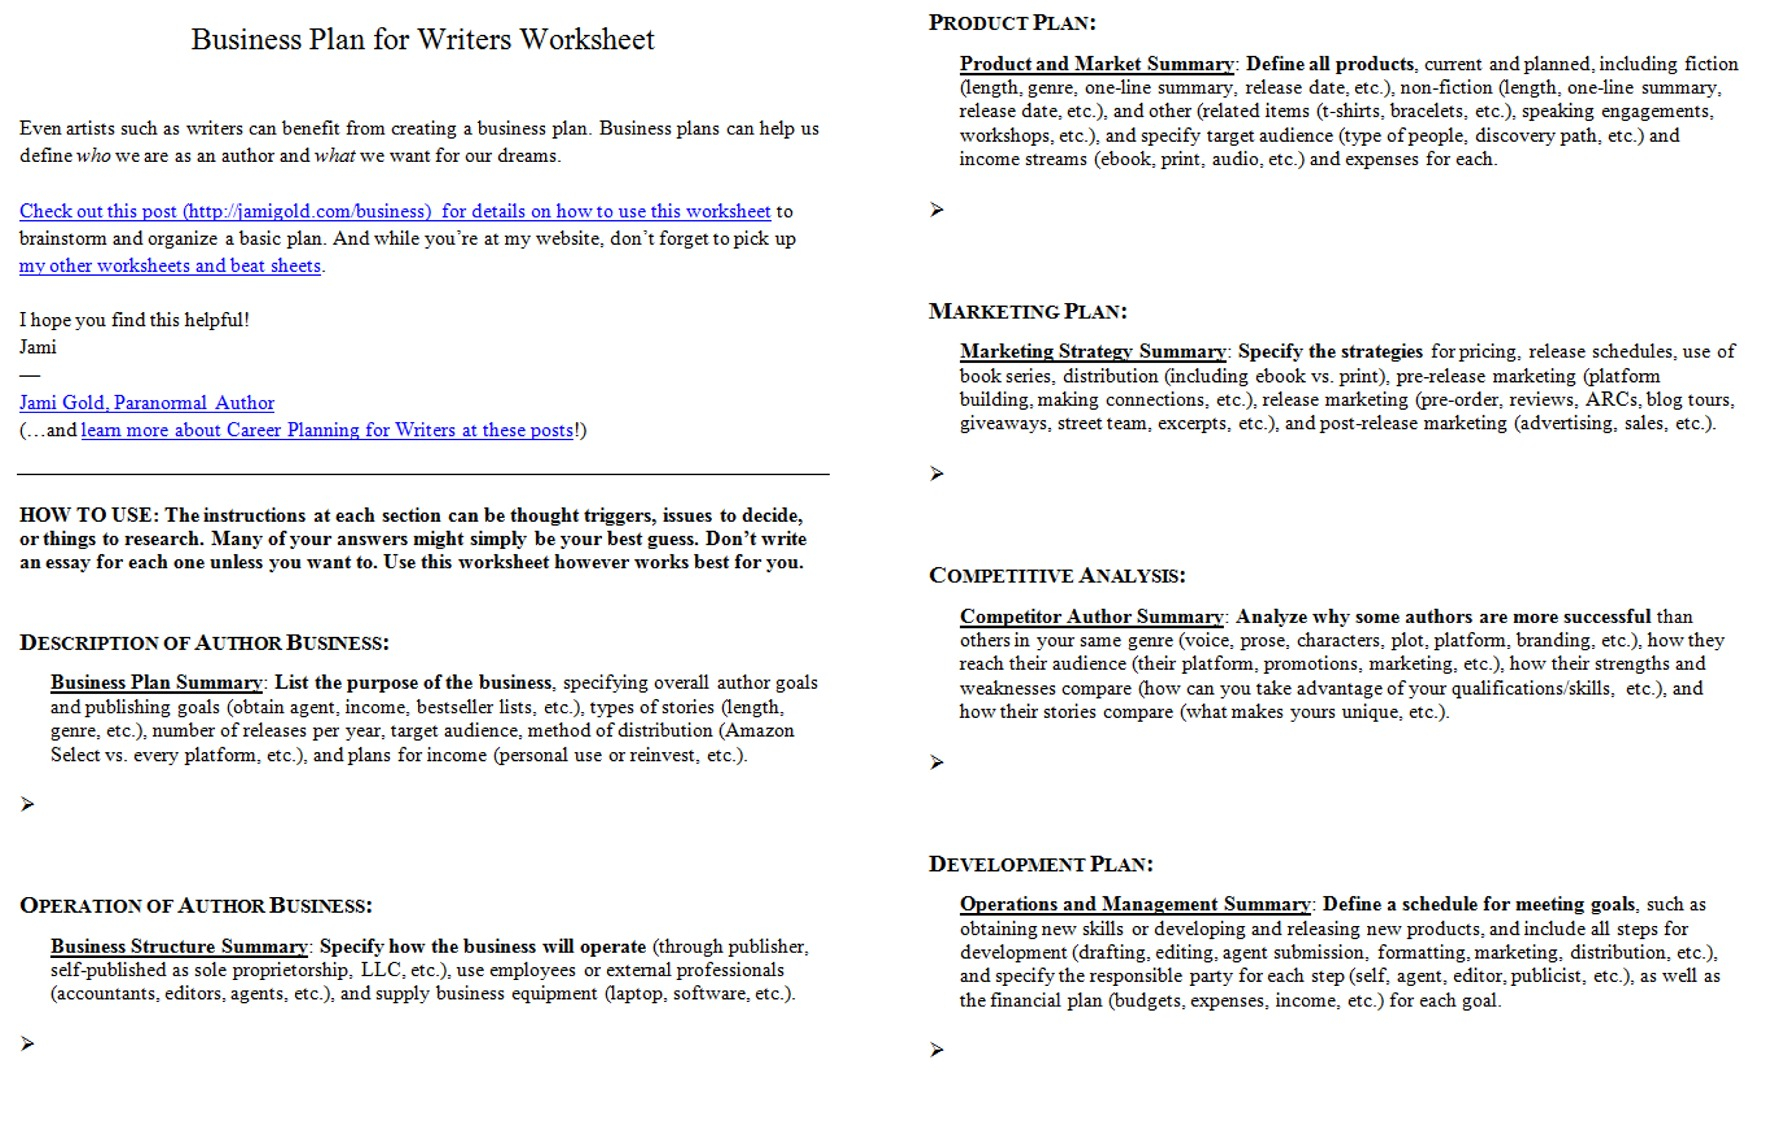 Proatmealus  Winning Worksheets For Writers  Jami Gold Paranormal Author With Exciting Screen Shot Of Both Pages Of The Business Plan For Writers Worksheet With Astonishing Vowel Digraph Worksheets Also Kumon Worksheets Free In Addition Th Grade Vocabulary Worksheets And Business Interruption Worksheet As Well As Figurative Language Practice Worksheets Additionally Nets Worksheet From Jamigoldcom With Proatmealus  Exciting Worksheets For Writers  Jami Gold Paranormal Author With Astonishing Screen Shot Of Both Pages Of The Business Plan For Writers Worksheet And Winning Vowel Digraph Worksheets Also Kumon Worksheets Free In Addition Th Grade Vocabulary Worksheets From Jamigoldcom